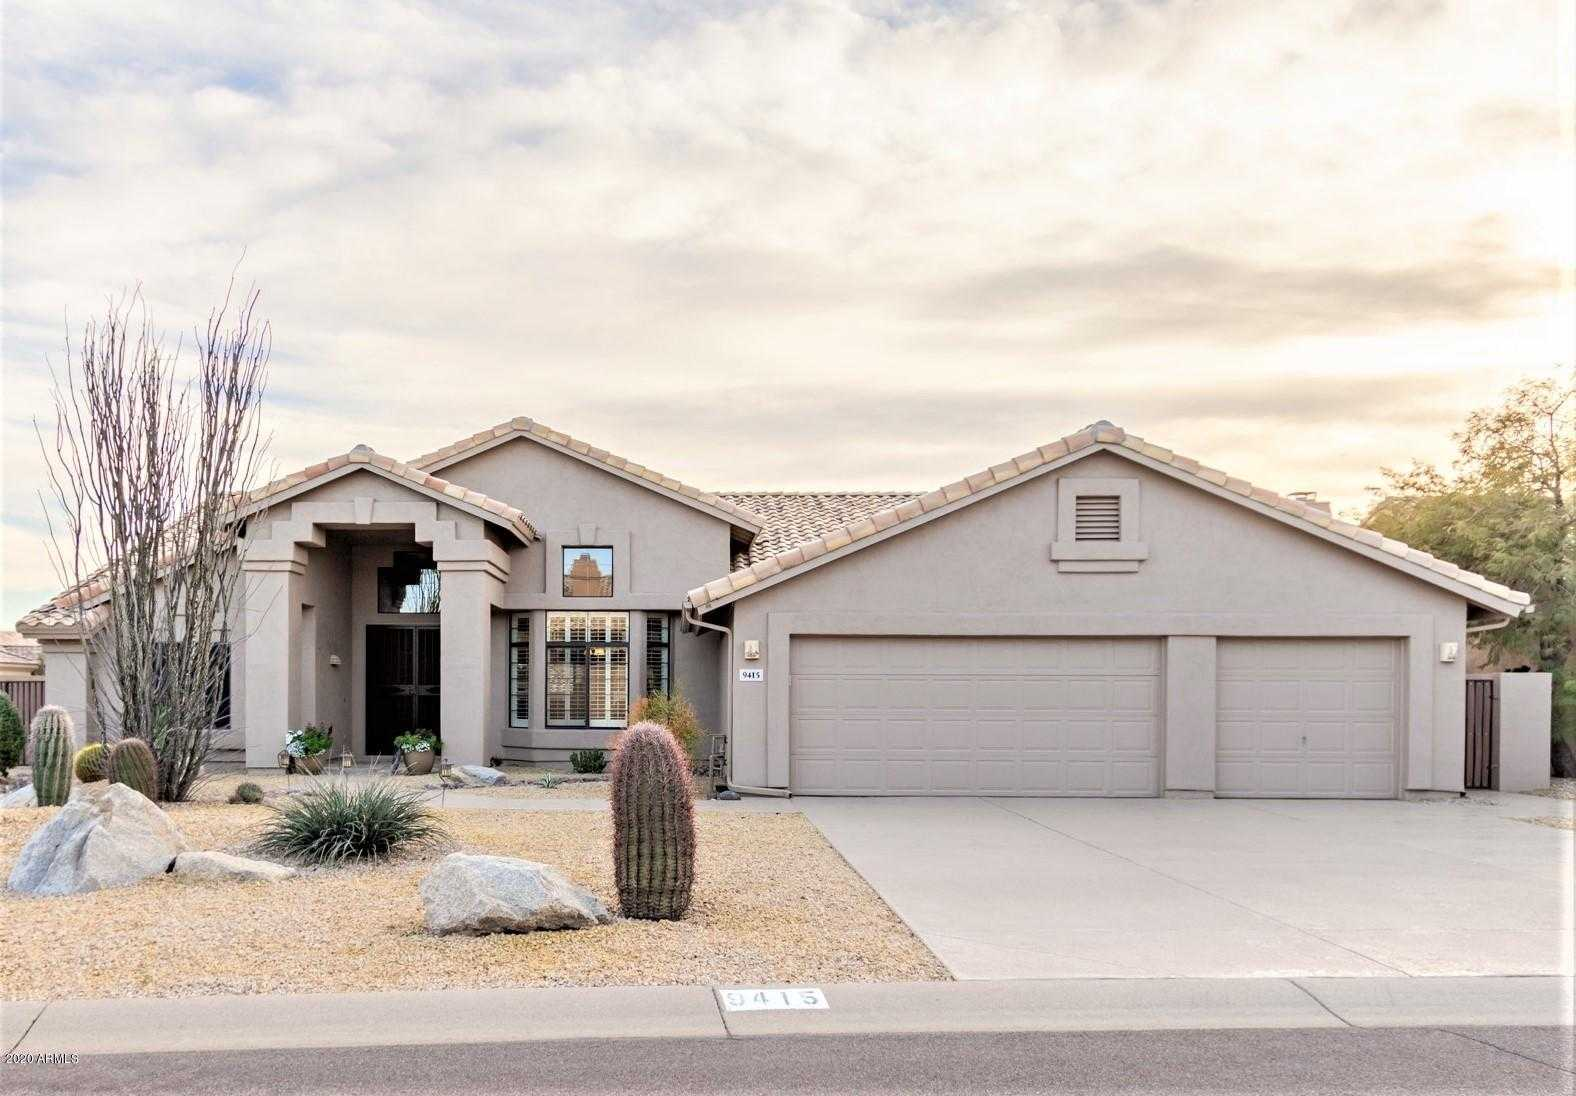 $610,000 - 3Br/2Ba - Home for Sale in Pinnacle Ridge At Troon North, Scottsdale